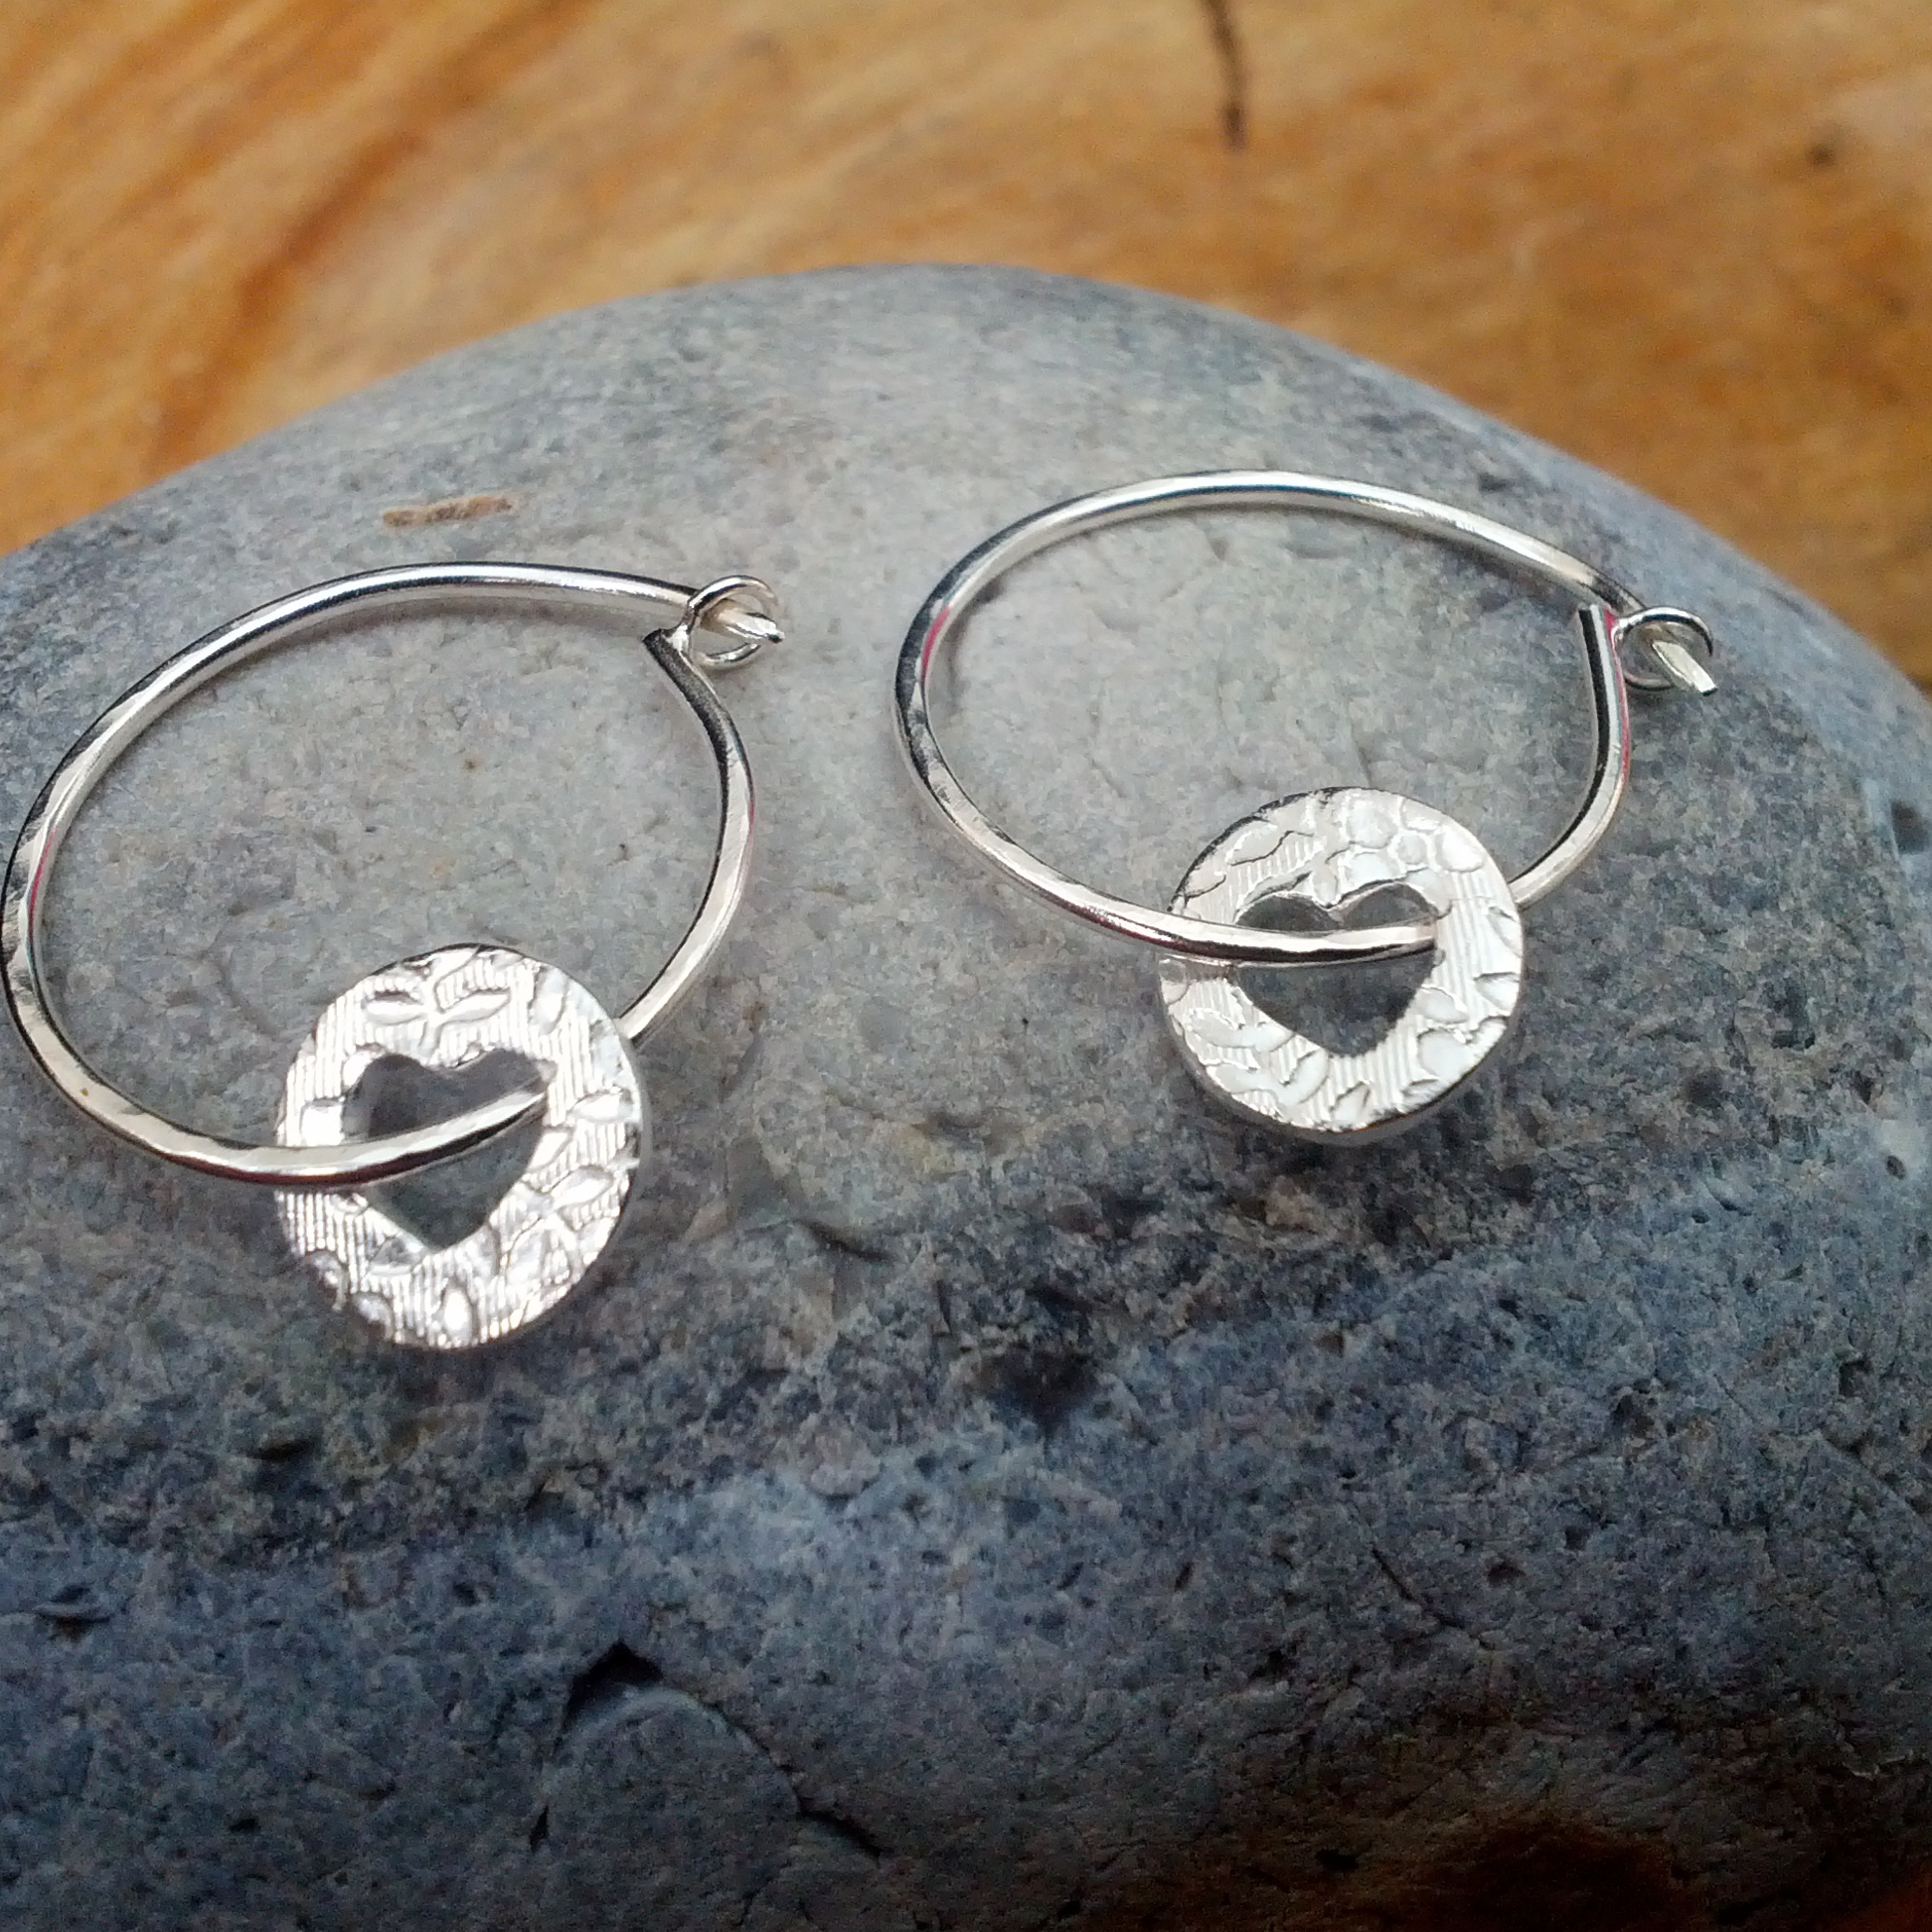 Silver hoop earrings with cut out heart dangles